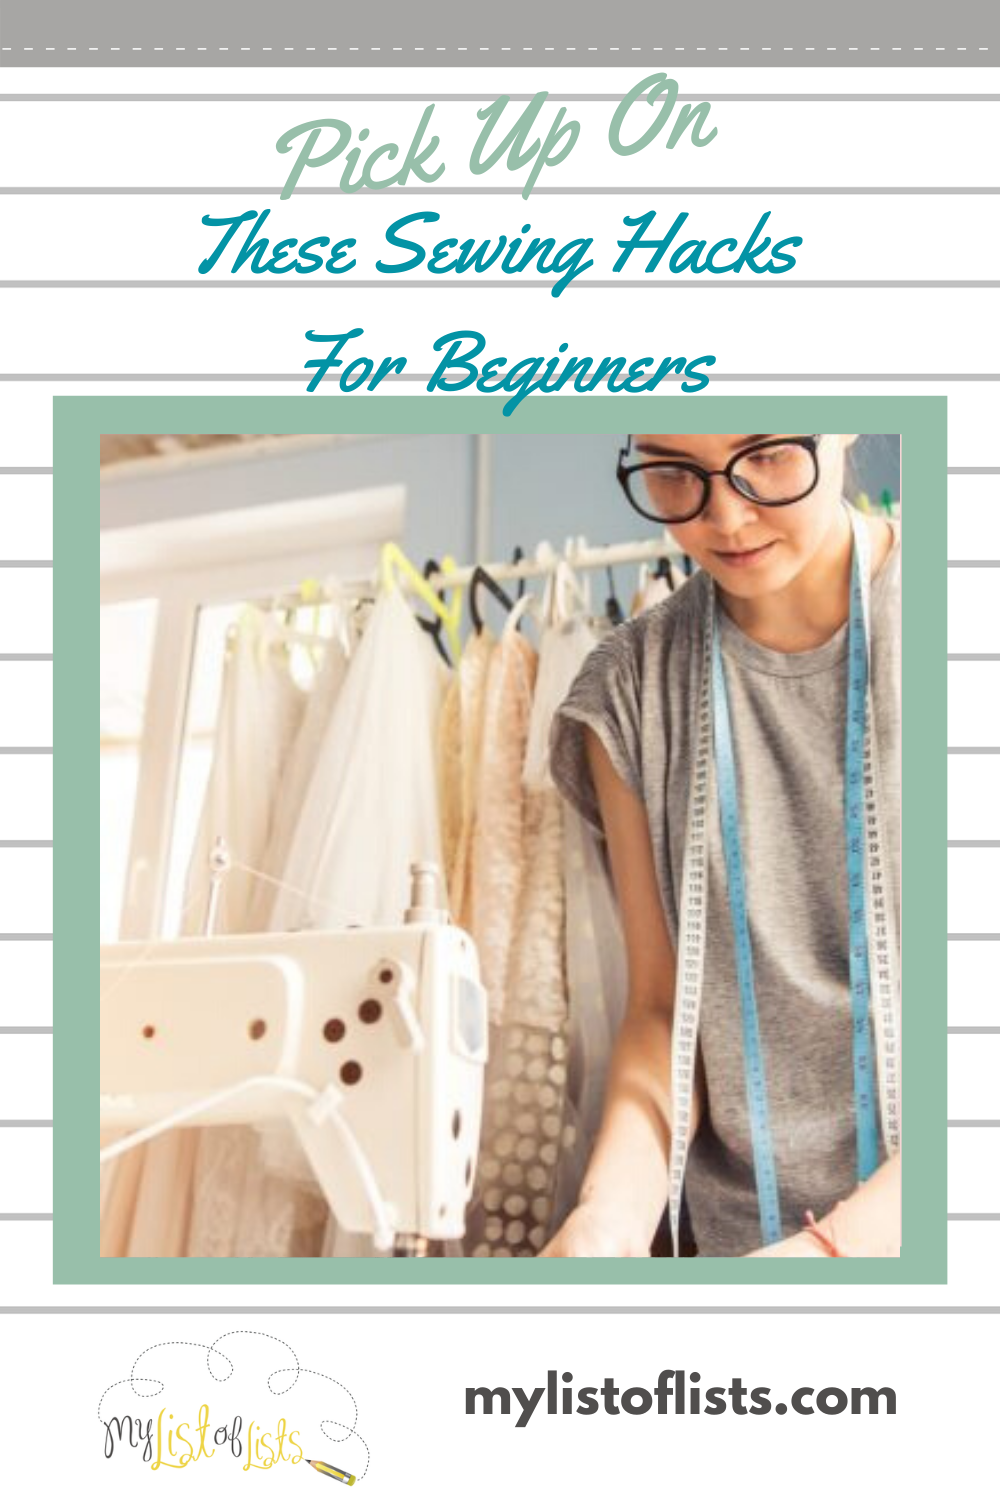 """Once you learn these few sewing hacks, you will laugh until you are in """"Stitches"""" Those things that once """"SEAM""""ed hard, are not easy to get zipped up. Keep reading for some super helpful sewing hacks that every beginner will love to know. If you don't read it, well, SEW be it! You will miss out! #sewinghacks #sewingmadesimple #beginningsewingtips"""